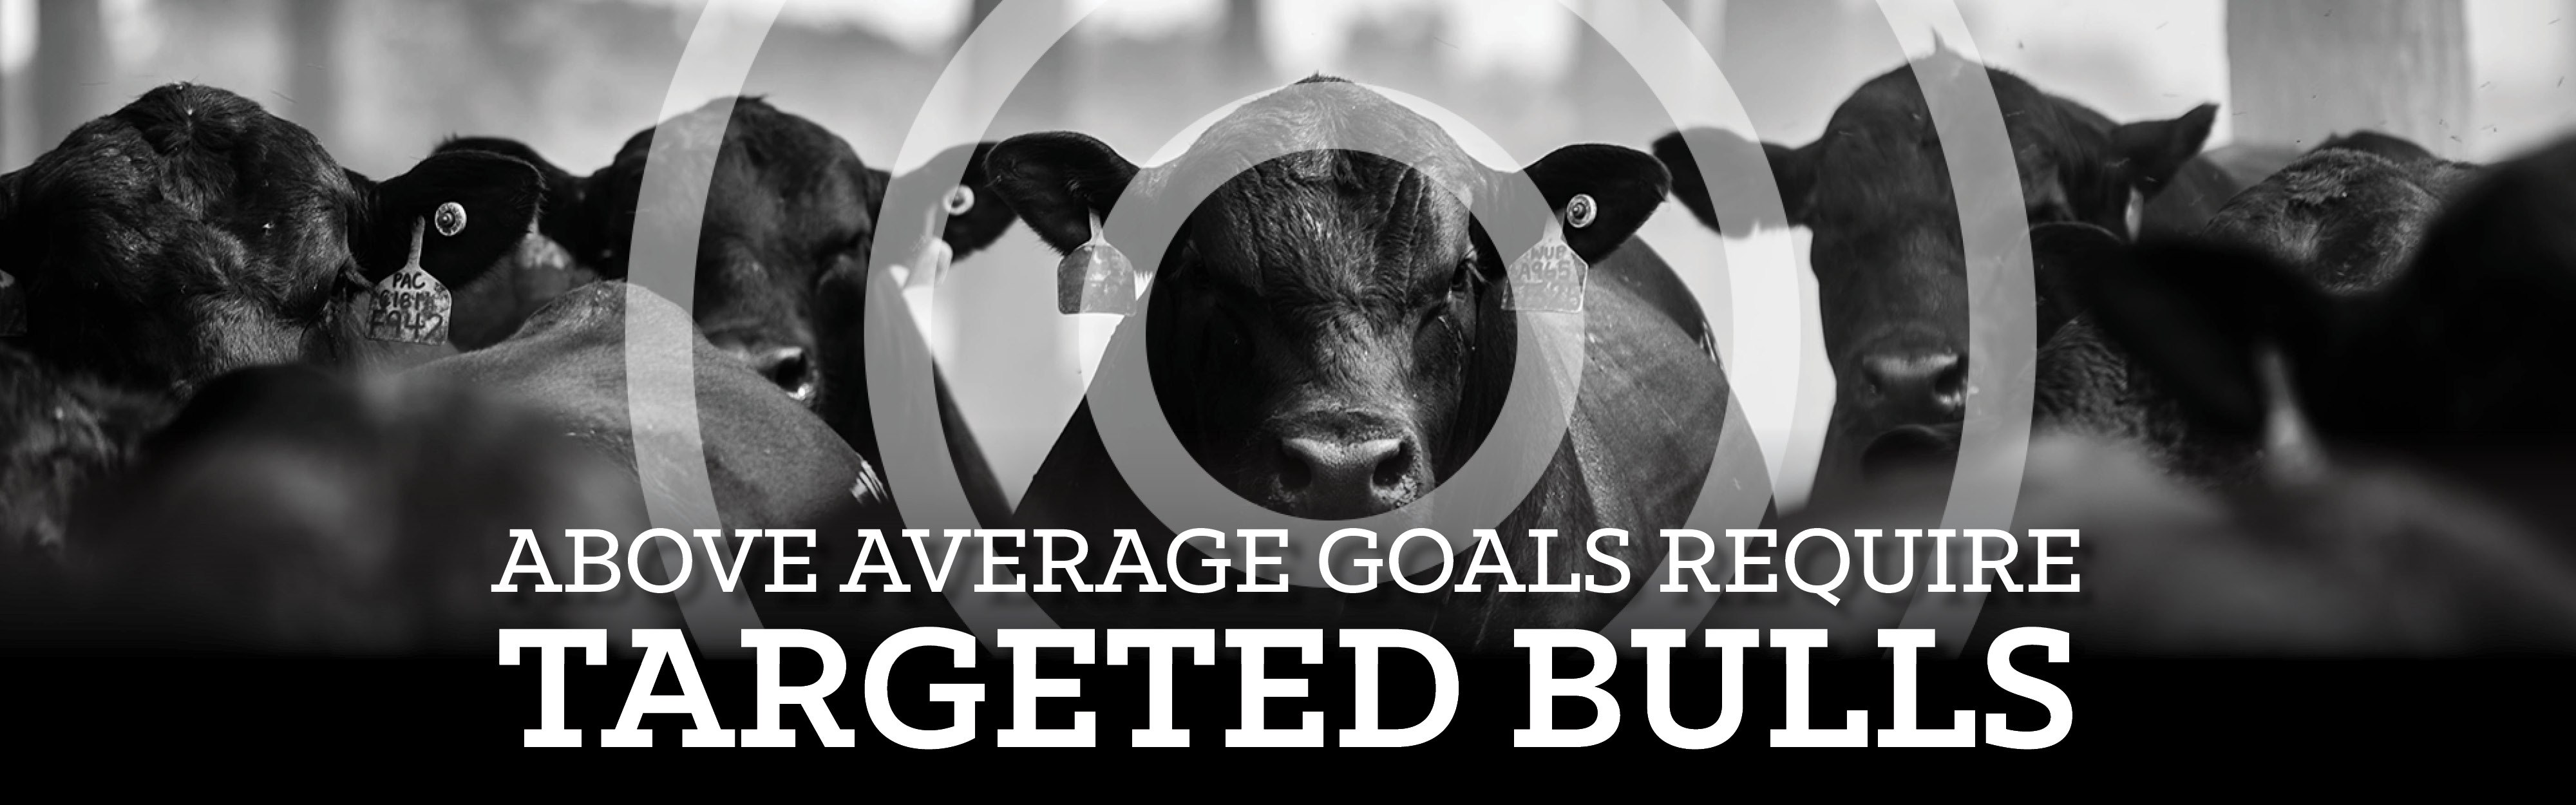 Above average bulls require targeted bulls banner